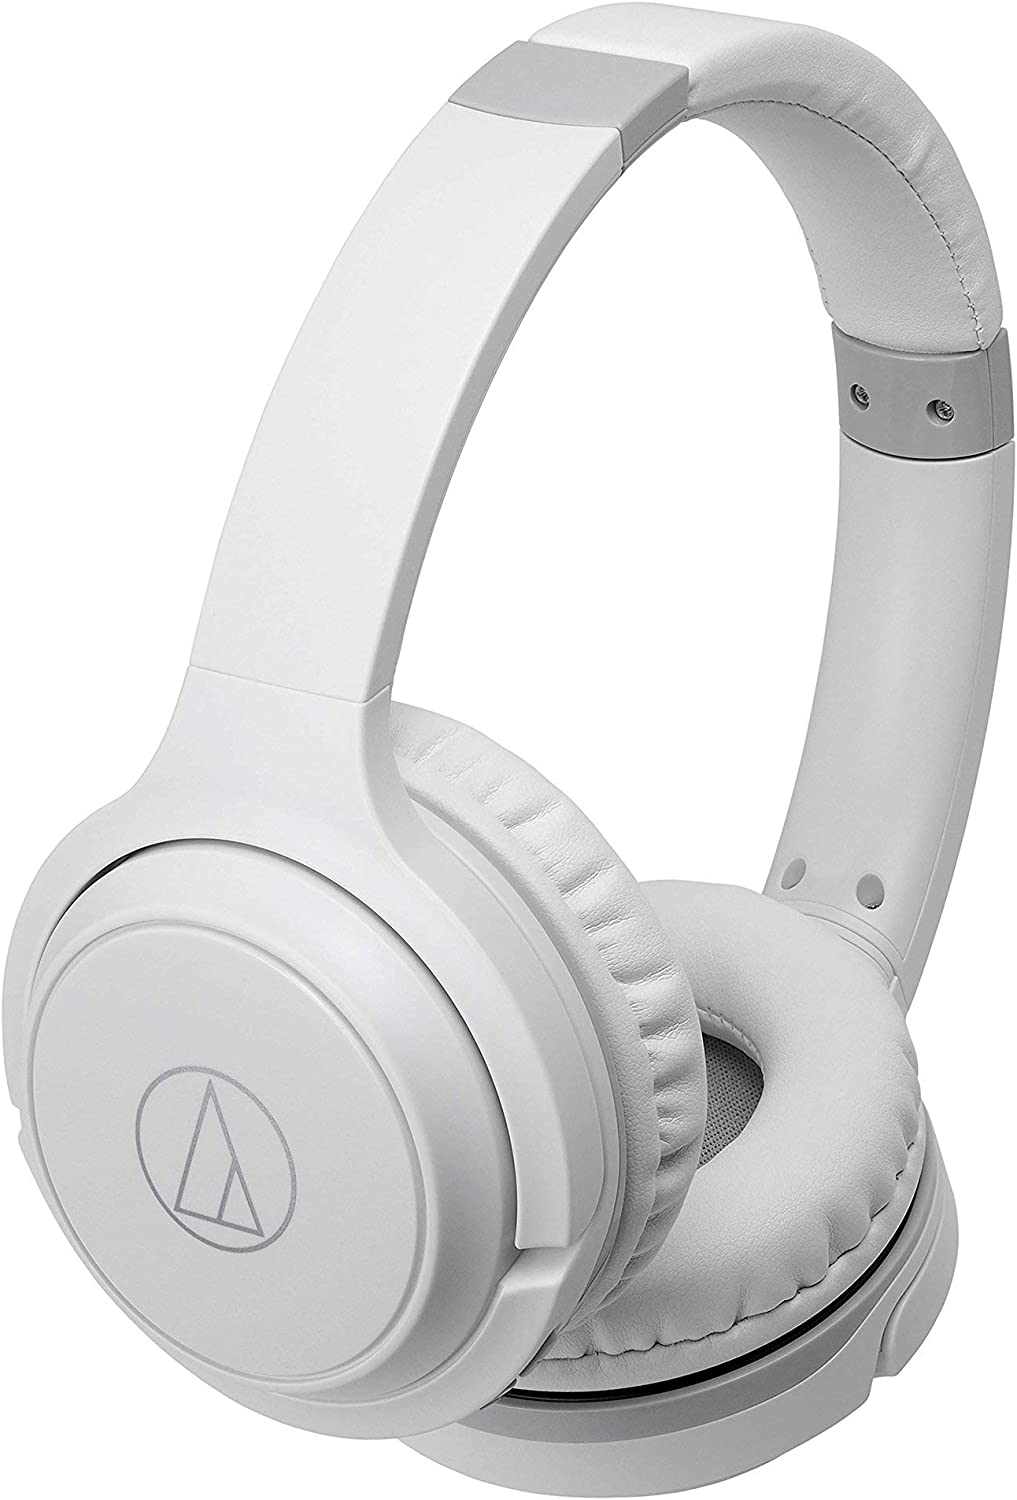 Audio-Technica ATH-S200BTWH Bluetooth Wireless On-Ear Headphones with Built-In Mic & Controls, White (Renewed)